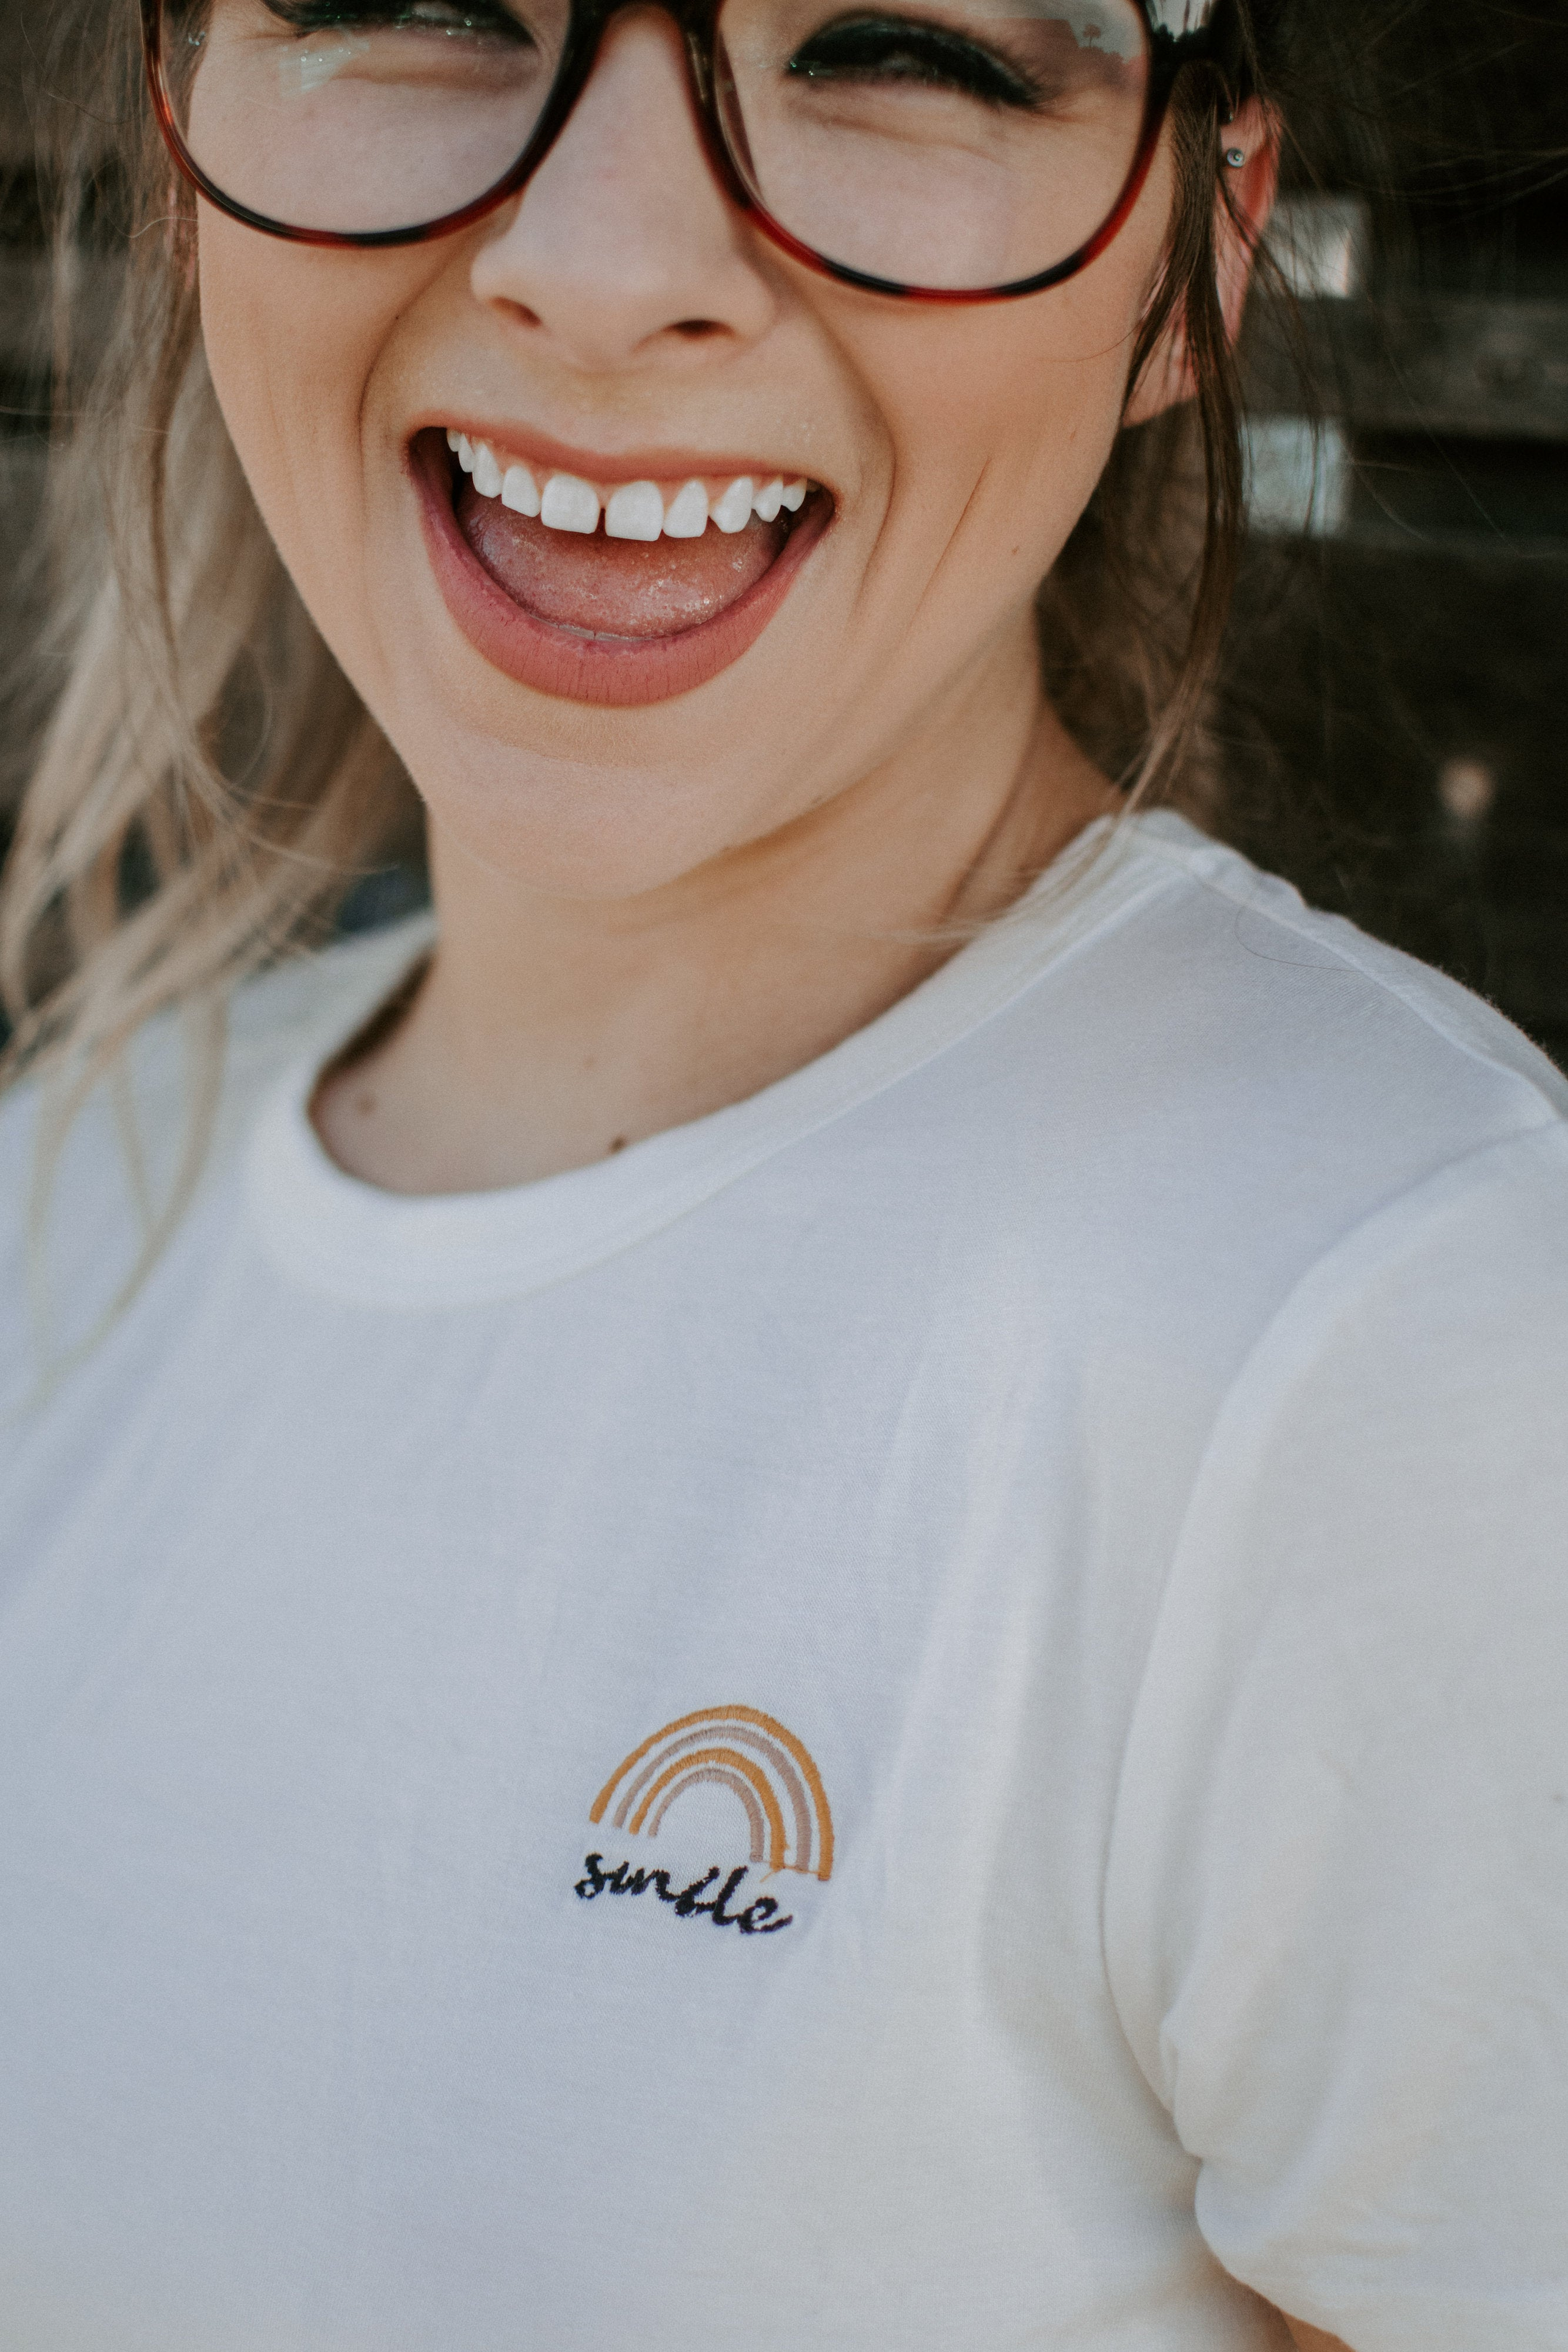 All Smiles Short Sleeve Tee - Parkside Harbor